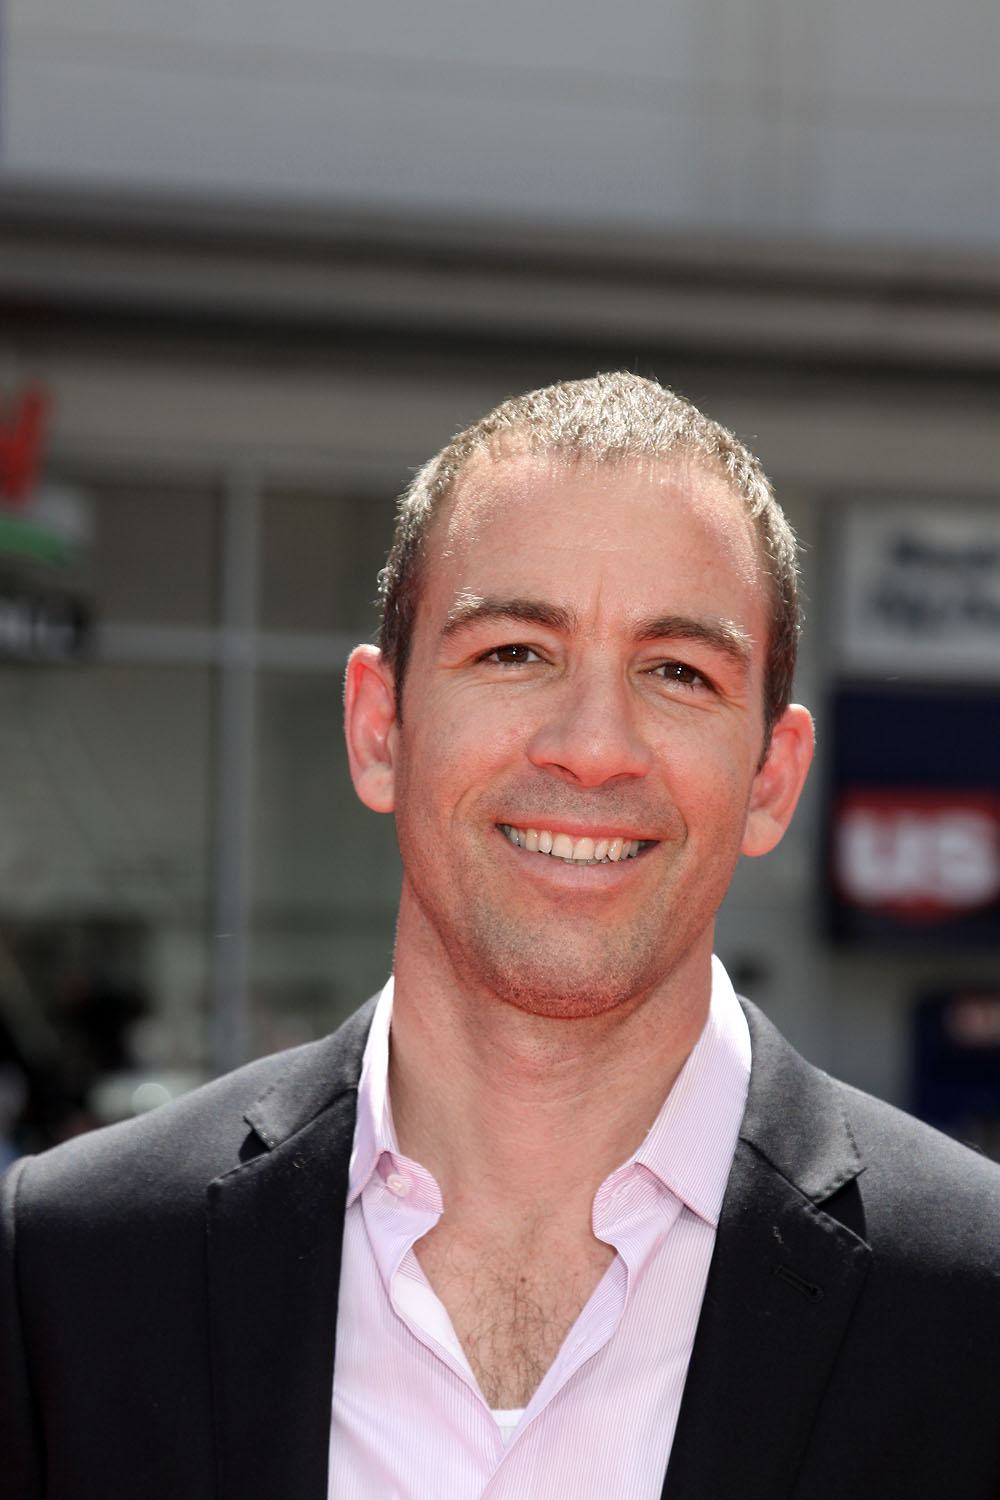 Bryan Callen earned a  million dollar salary, leaving the net worth at 0.2 million in 2017